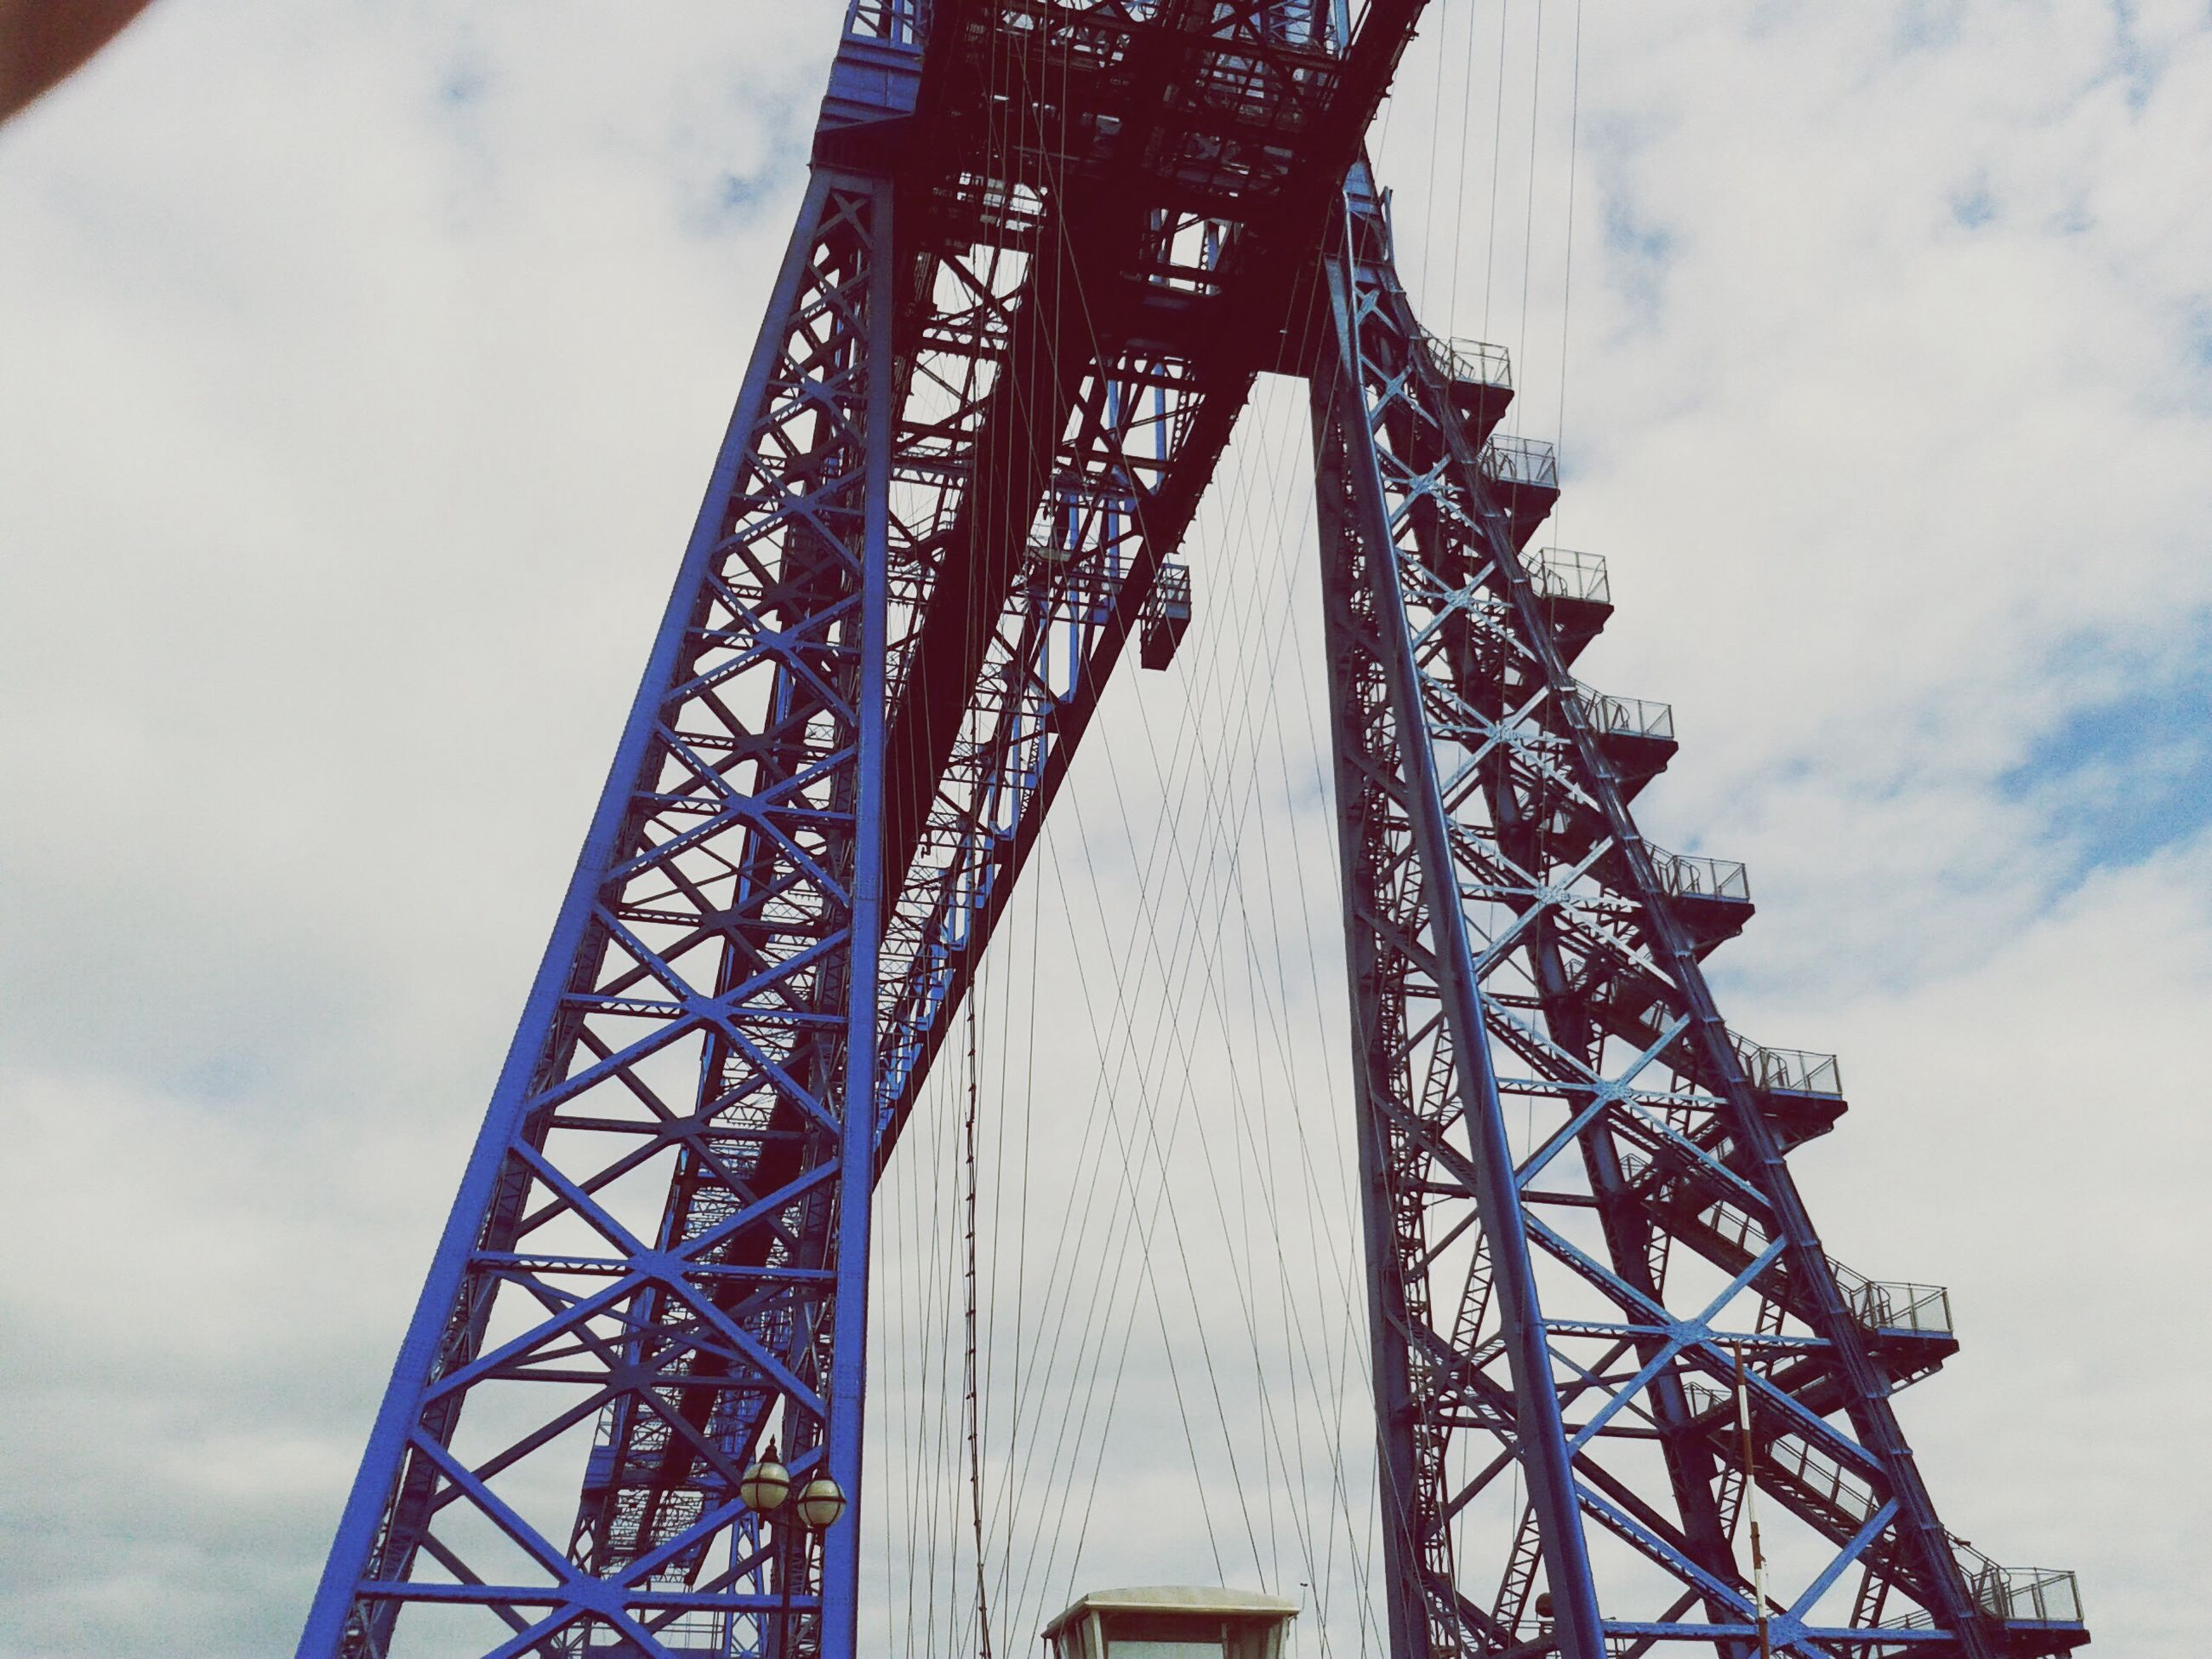 low angle view, sky, metal, day, outdoors, no people, arts culture and entertainment, built structure, amusement park, architecture, cloud - sky, big wheel